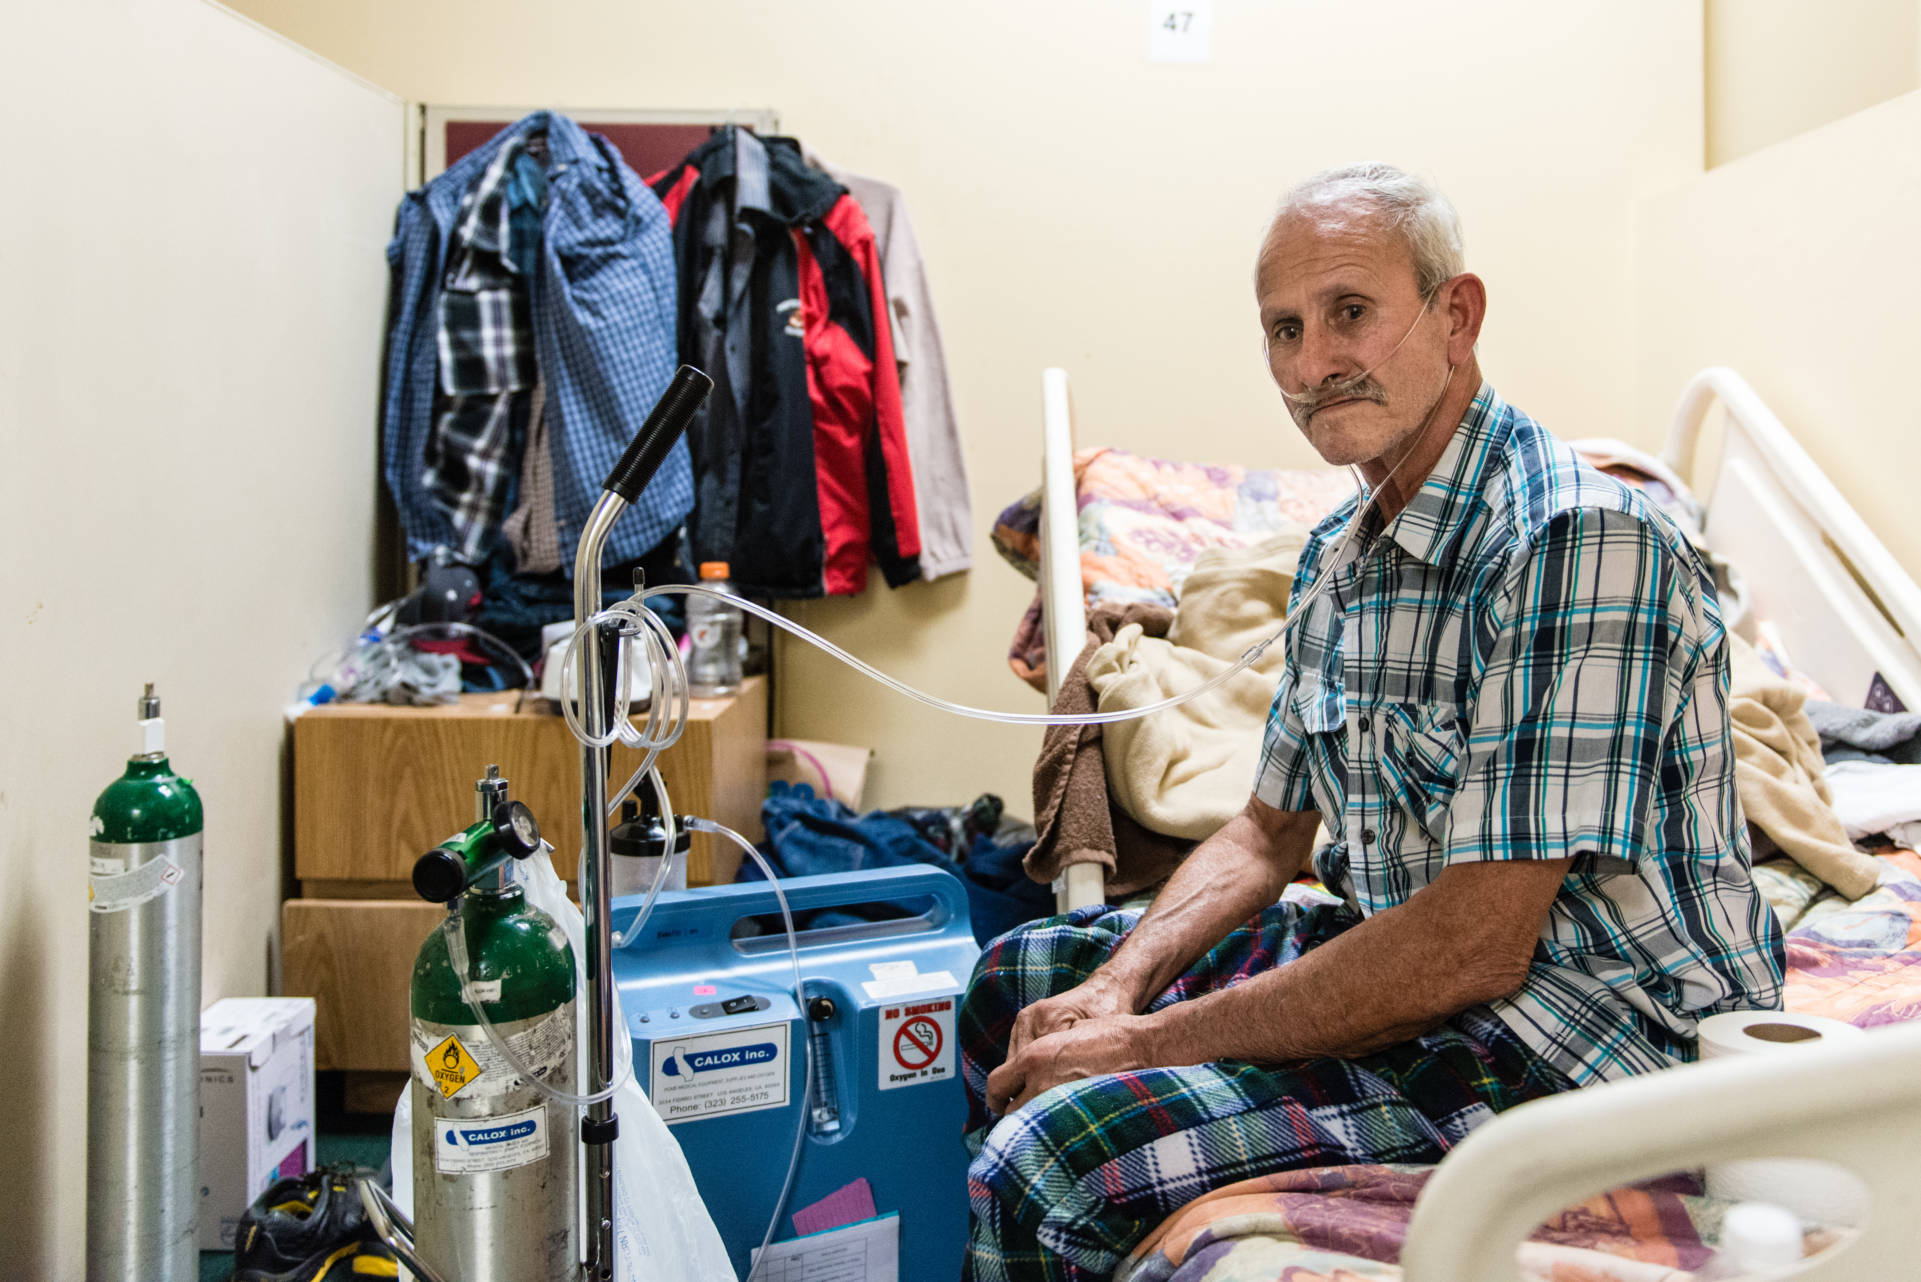 Victor Ramirez, 61, uses his ventilator at the men's dorm at the Illumination Foundation Recuperative Care in Santa Fe Springs, Calif.